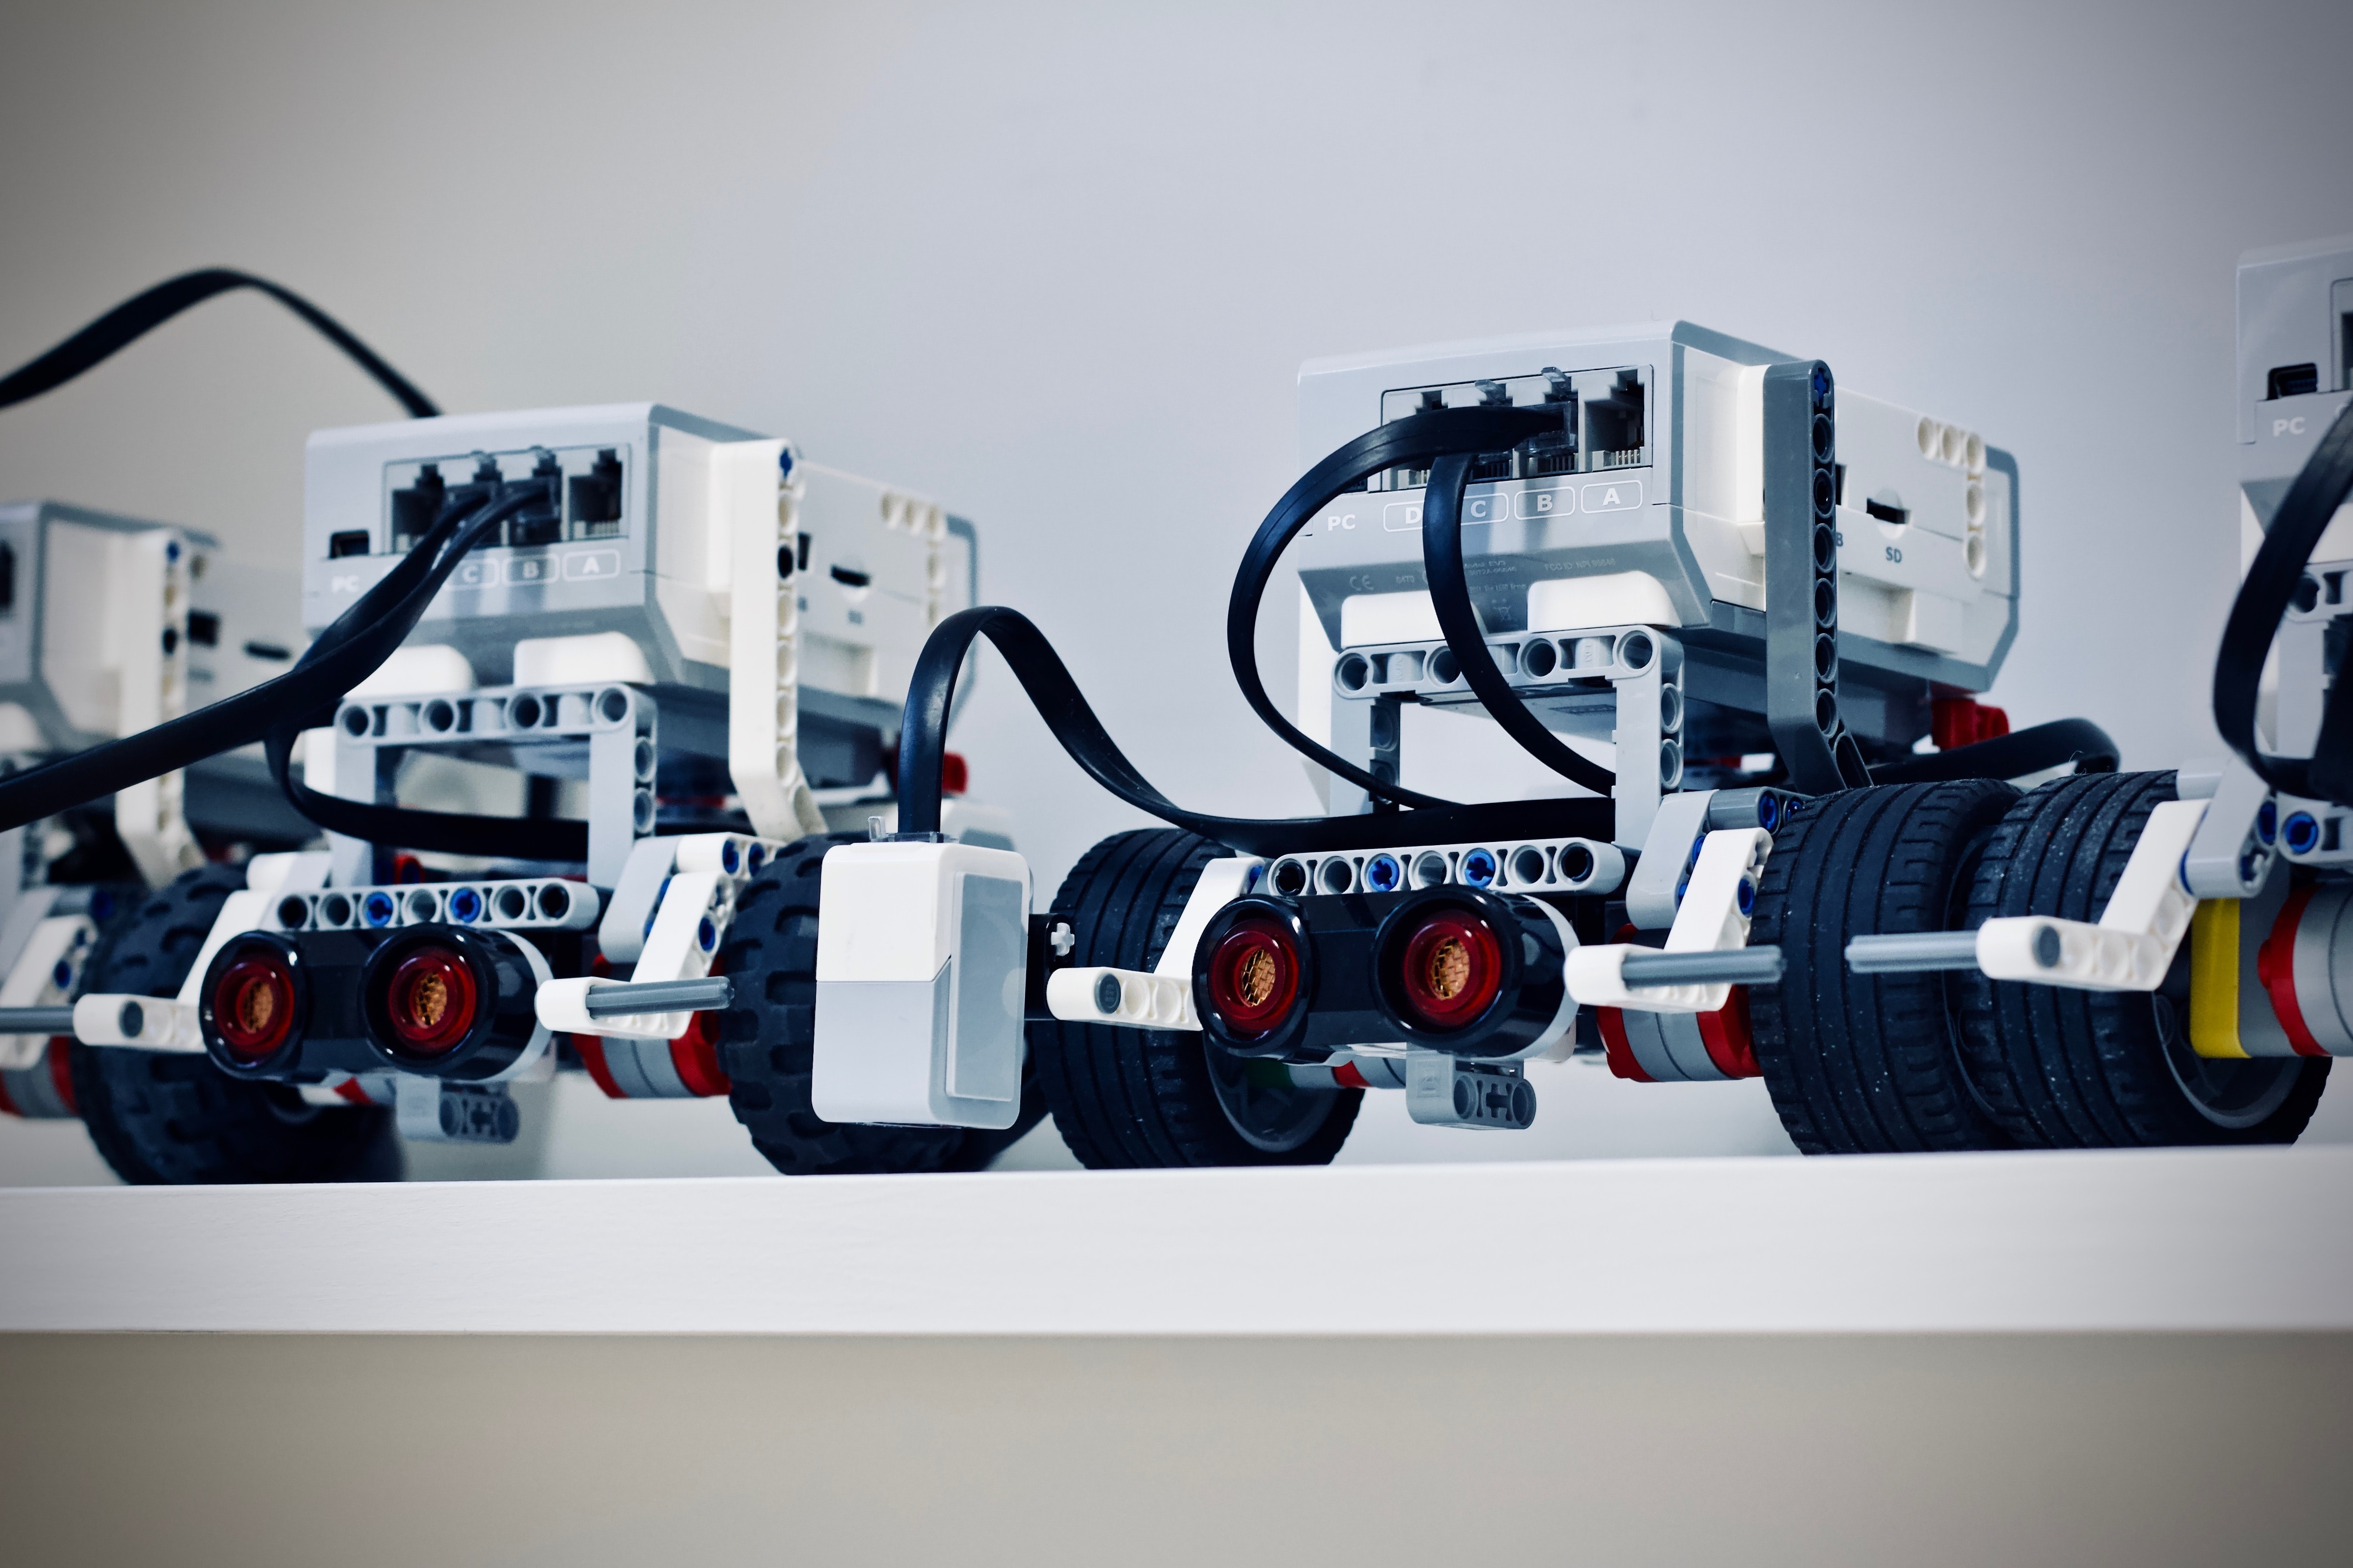 Two small robots